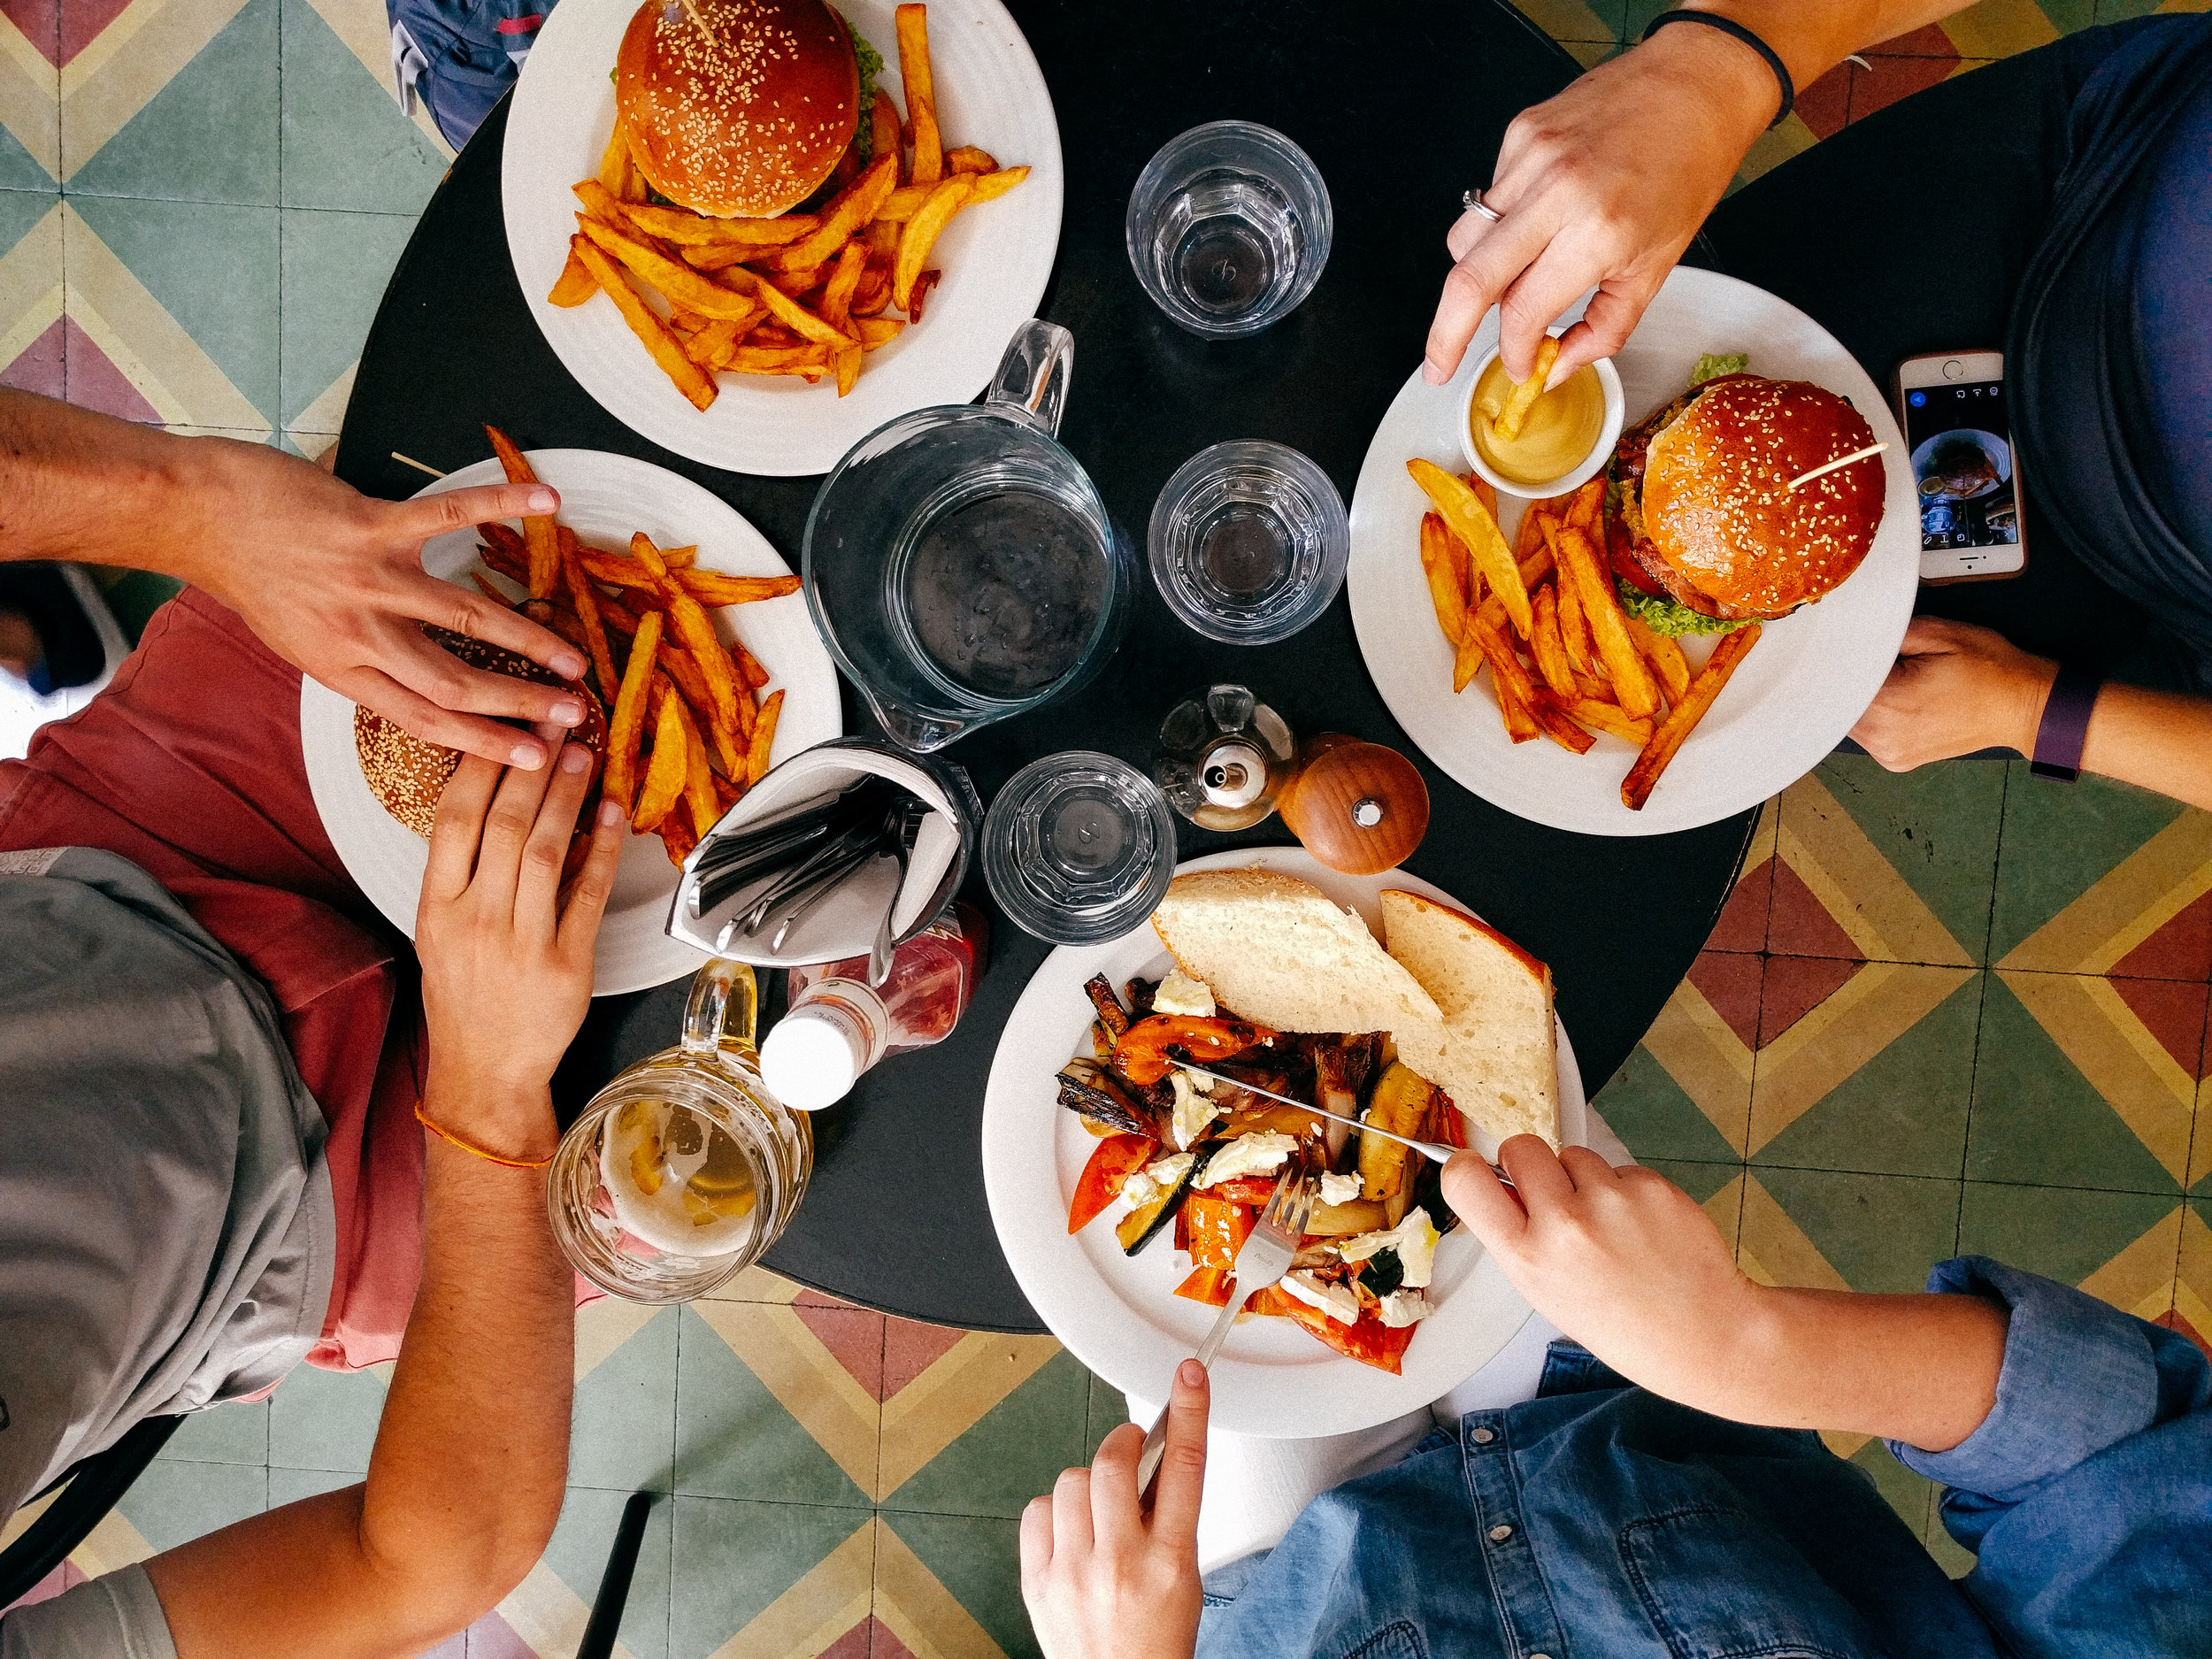 Eating healthy helps manage anxiety